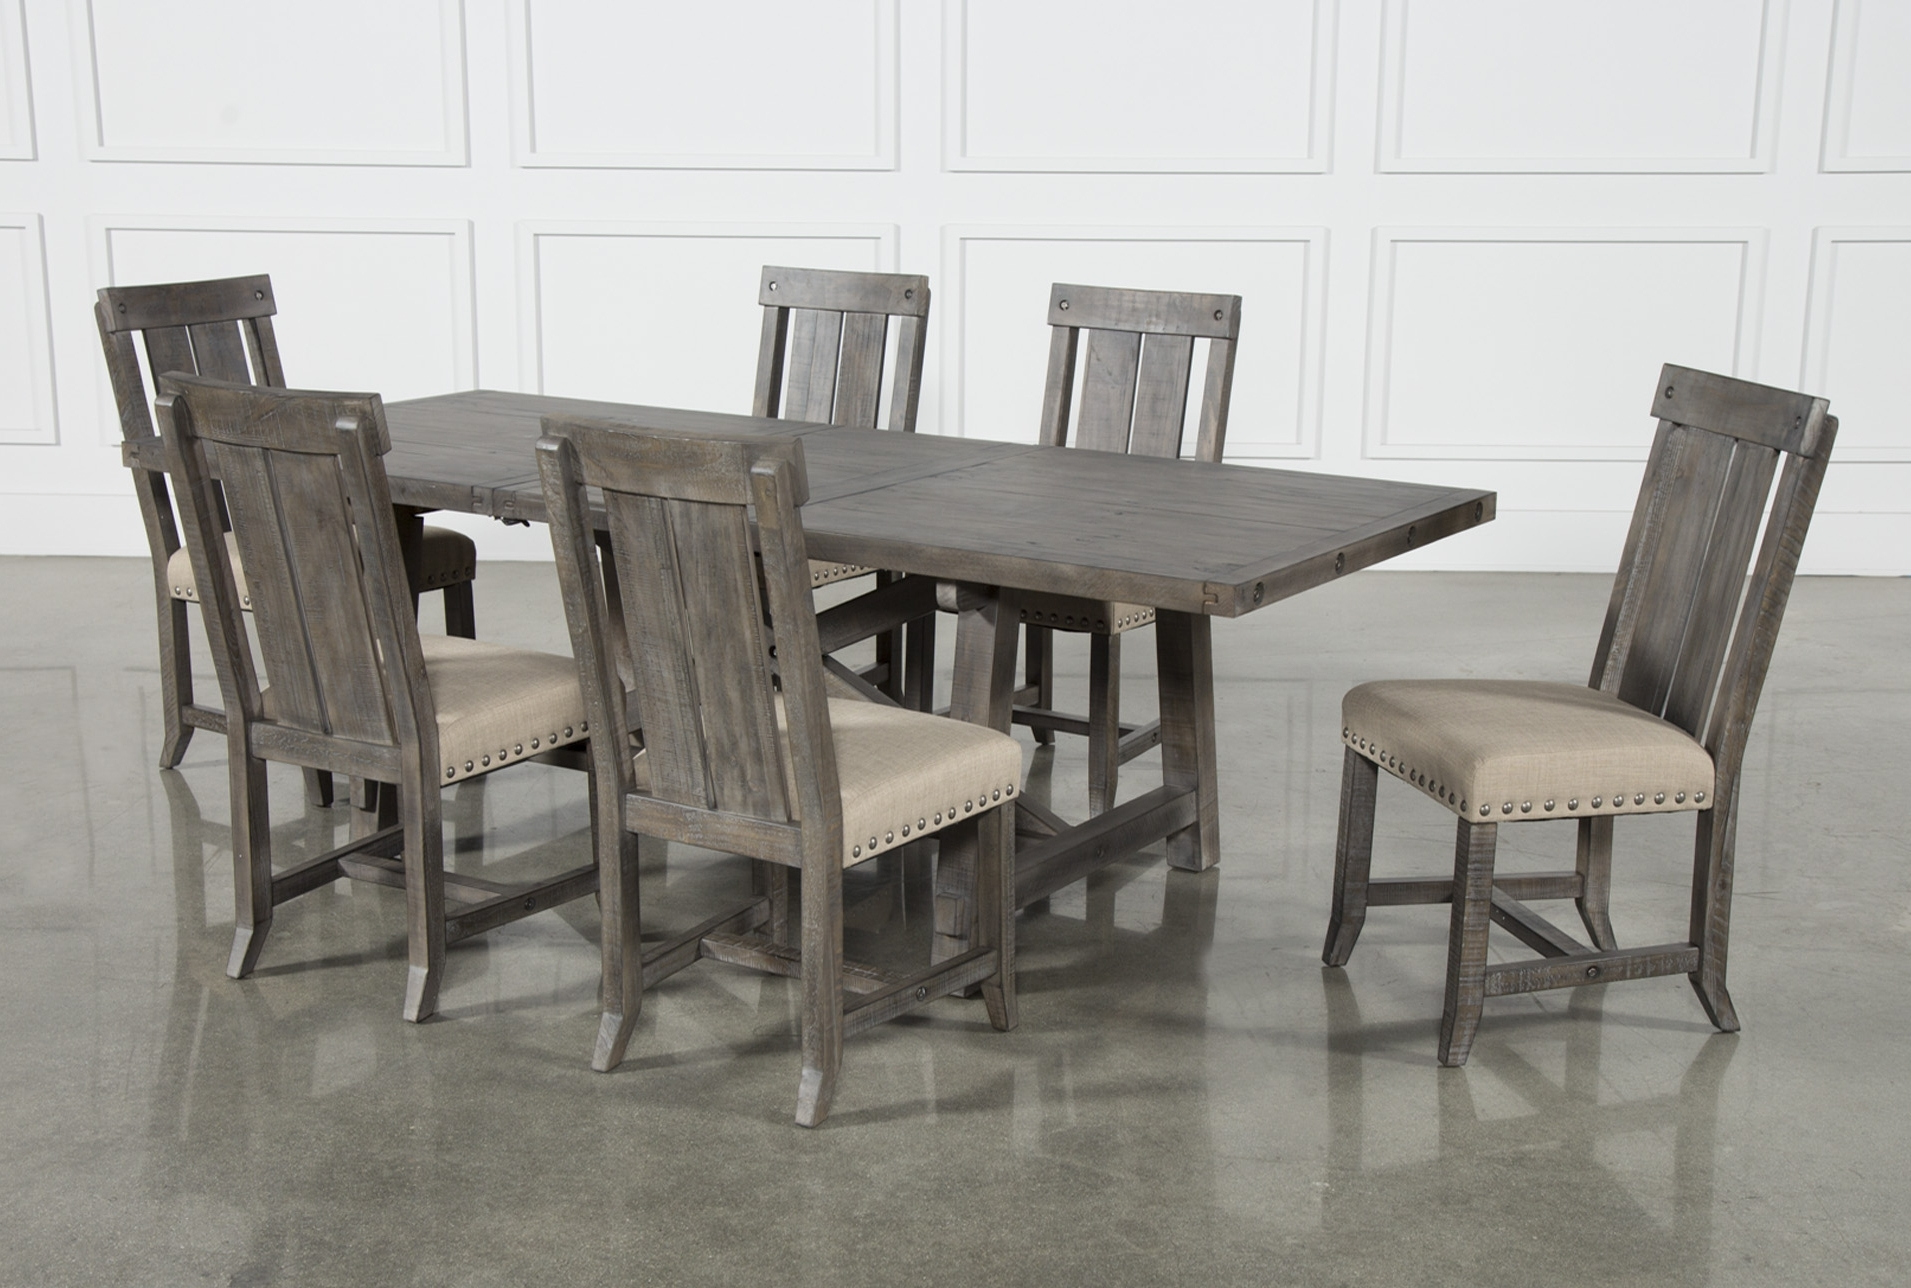 Jaxon Grey 6 Piece Rectangle Extension Dining Sets With Bench & Wood Chairs Throughout Widely Used Jaxon Grey 7 Piece Rectangle Extension Dining Set W/wood Chairs (Gallery 3 of 25)